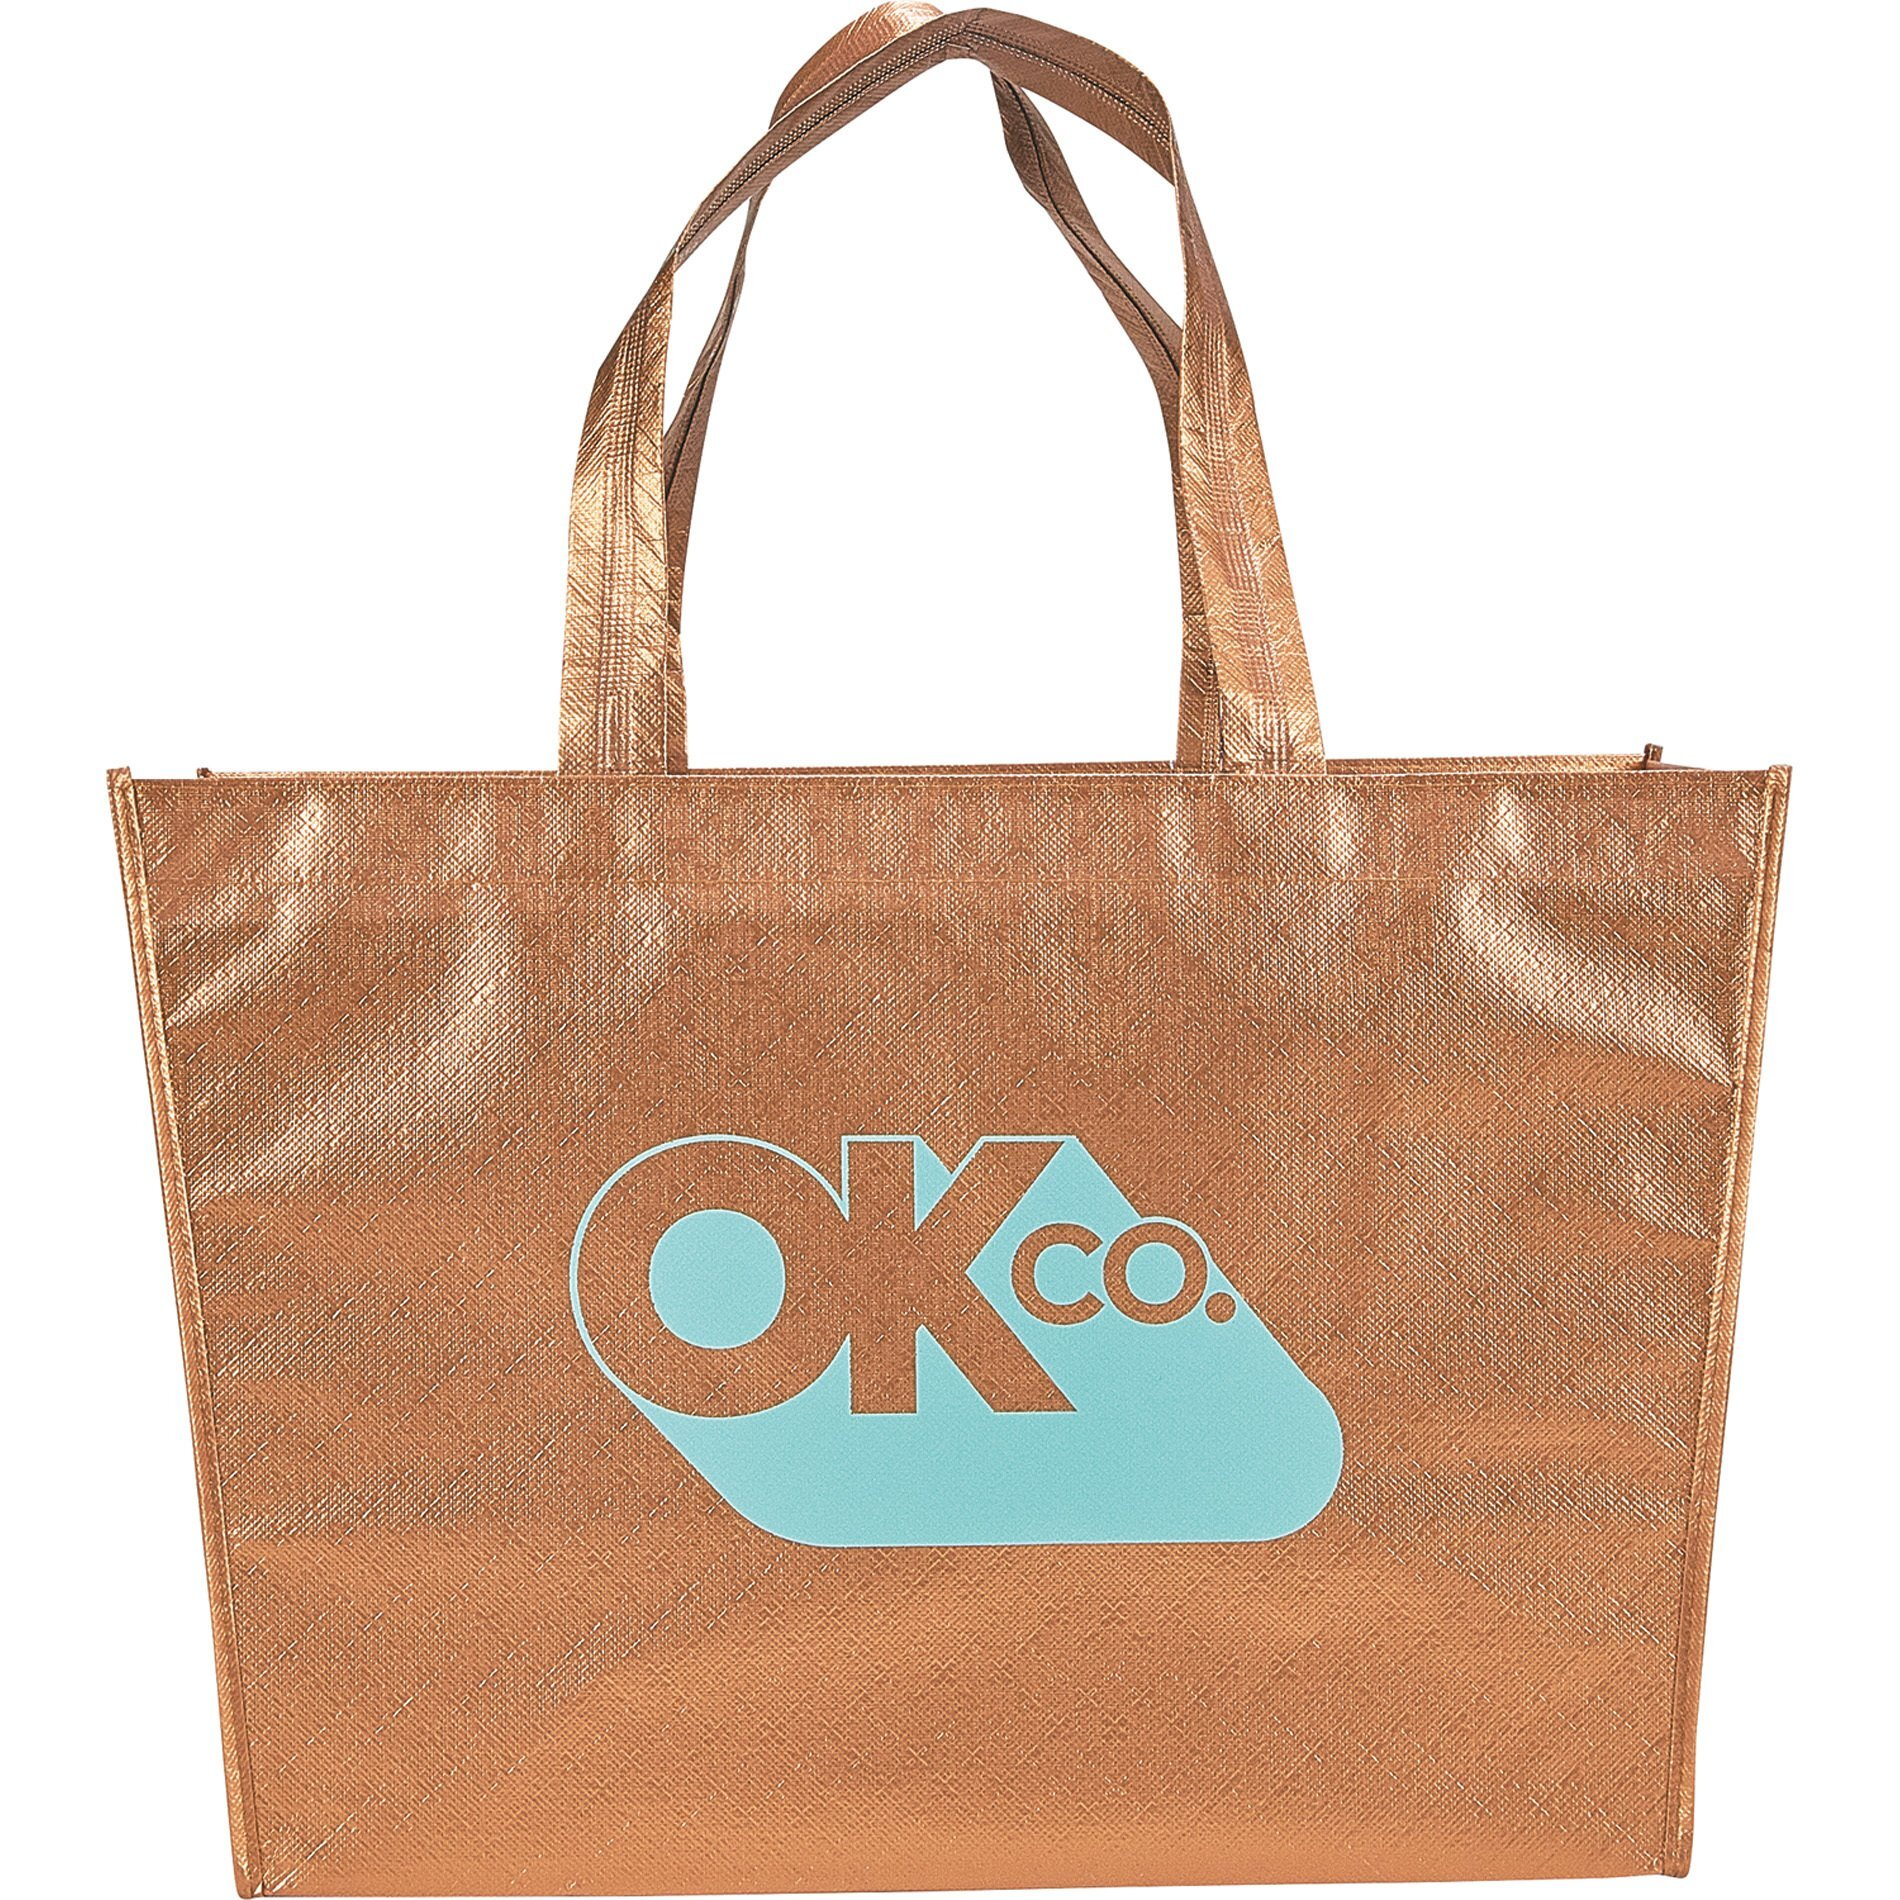 Alloy Laminated Non-Woven Shopper Tote